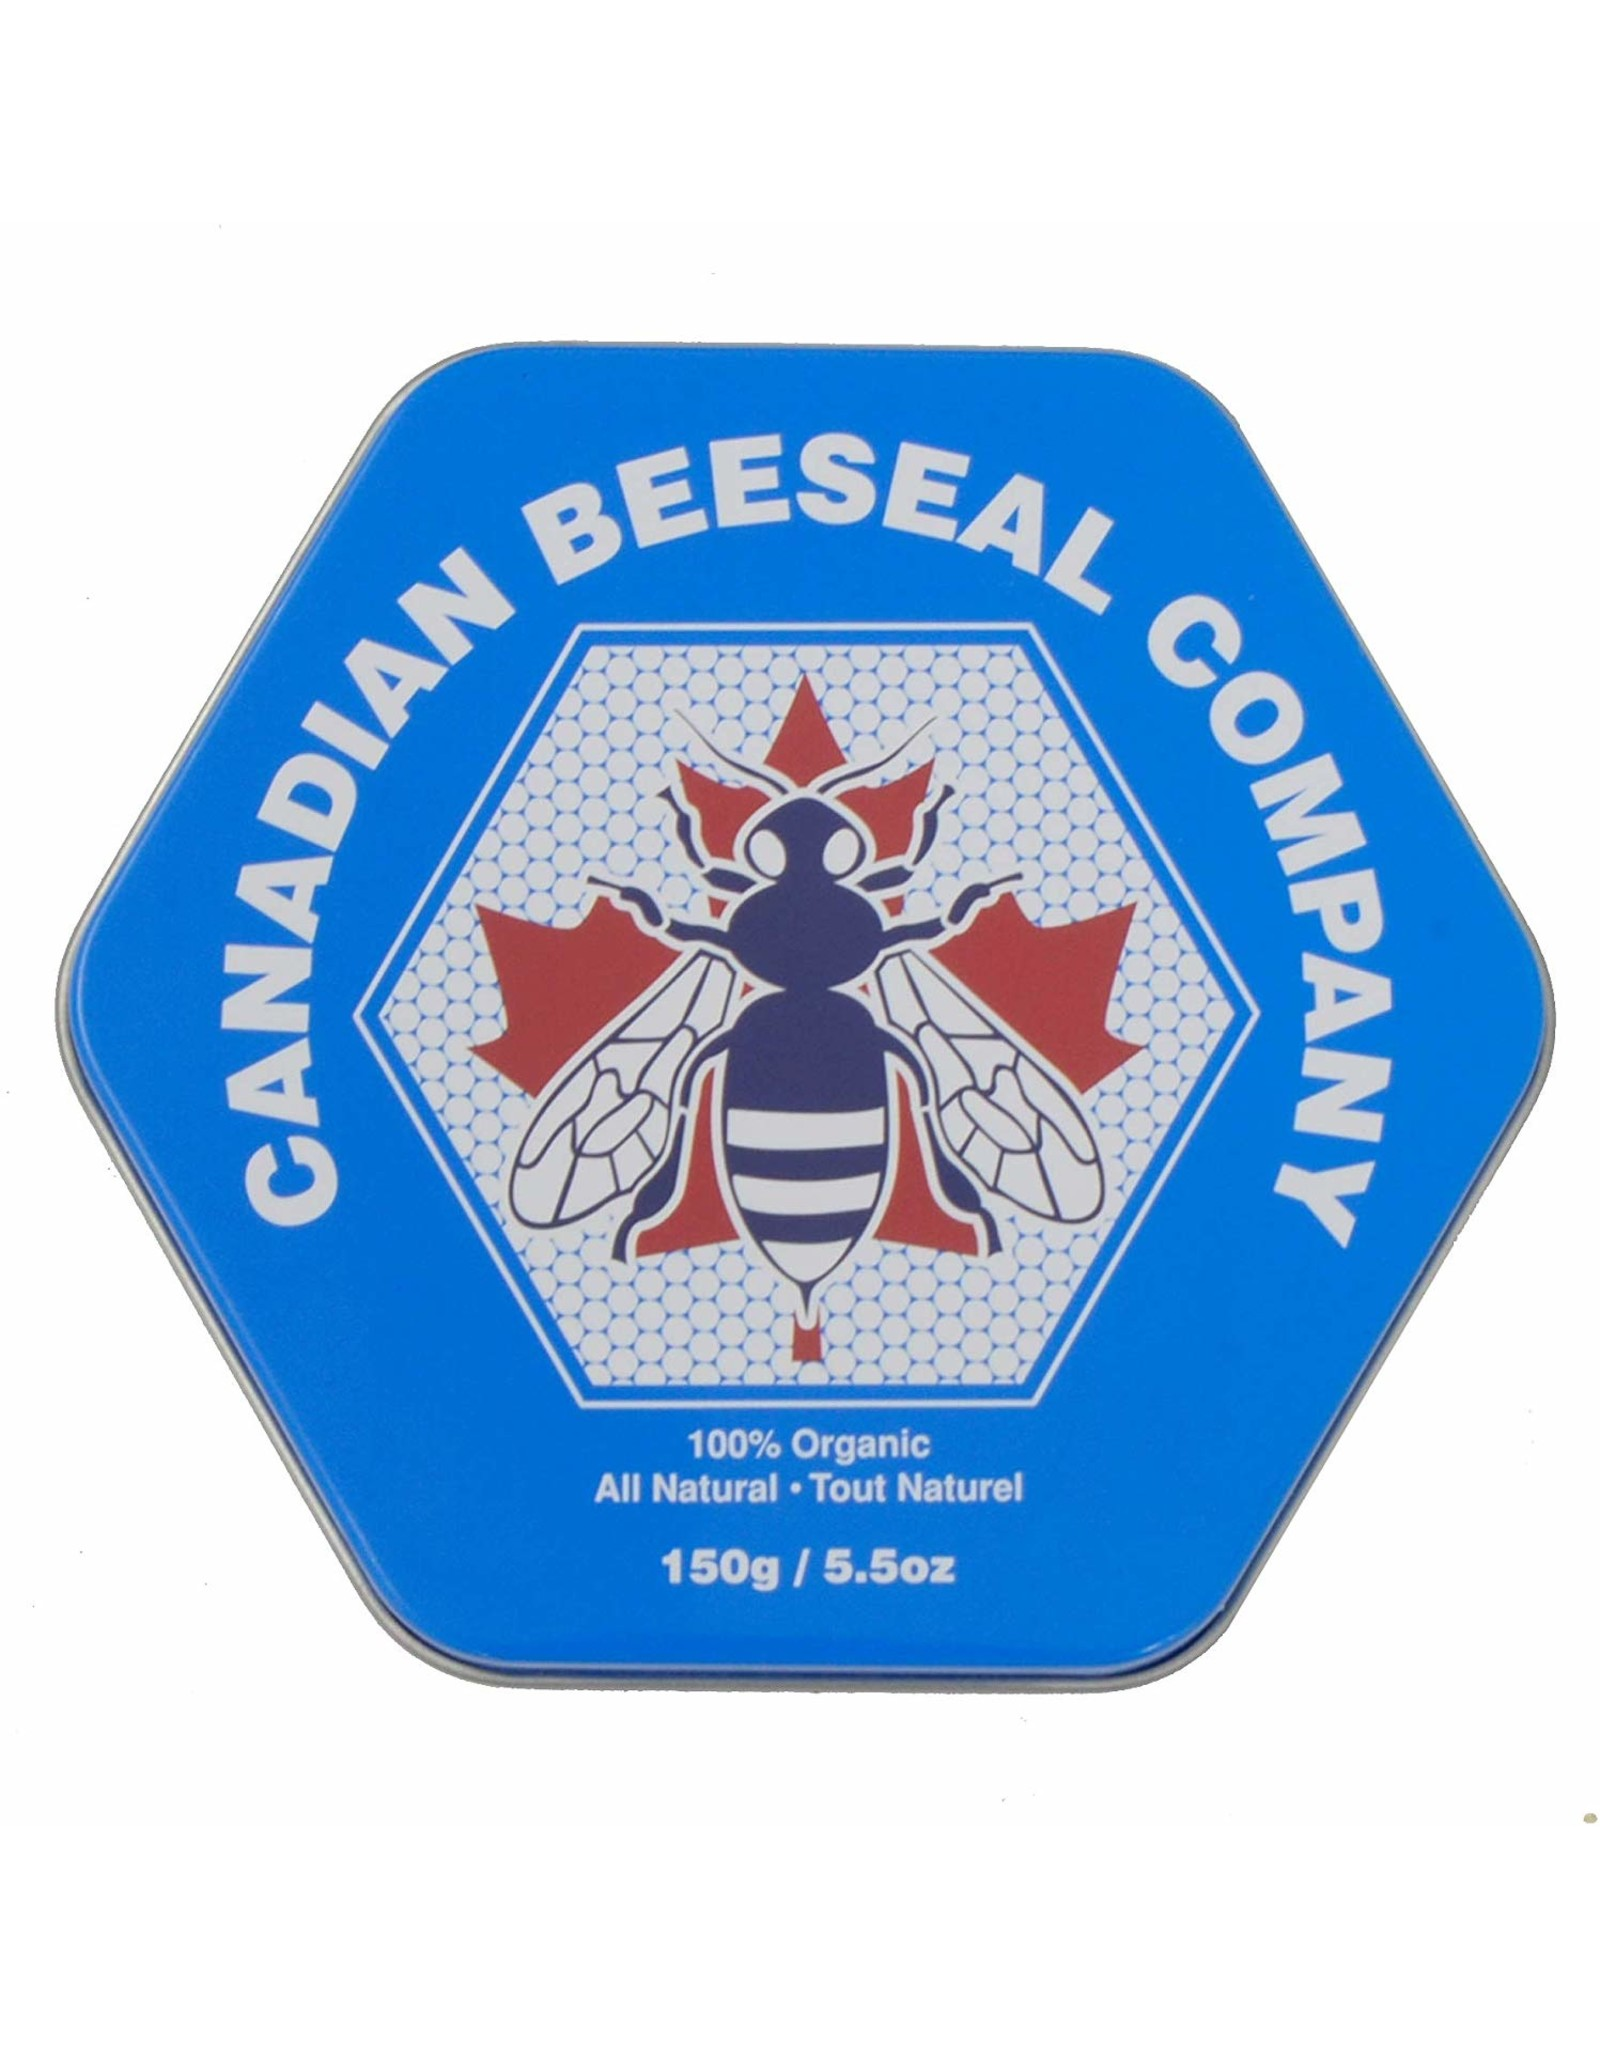 Canadian Beeseal Company Canadian Beeseal 150g/5,5 oz